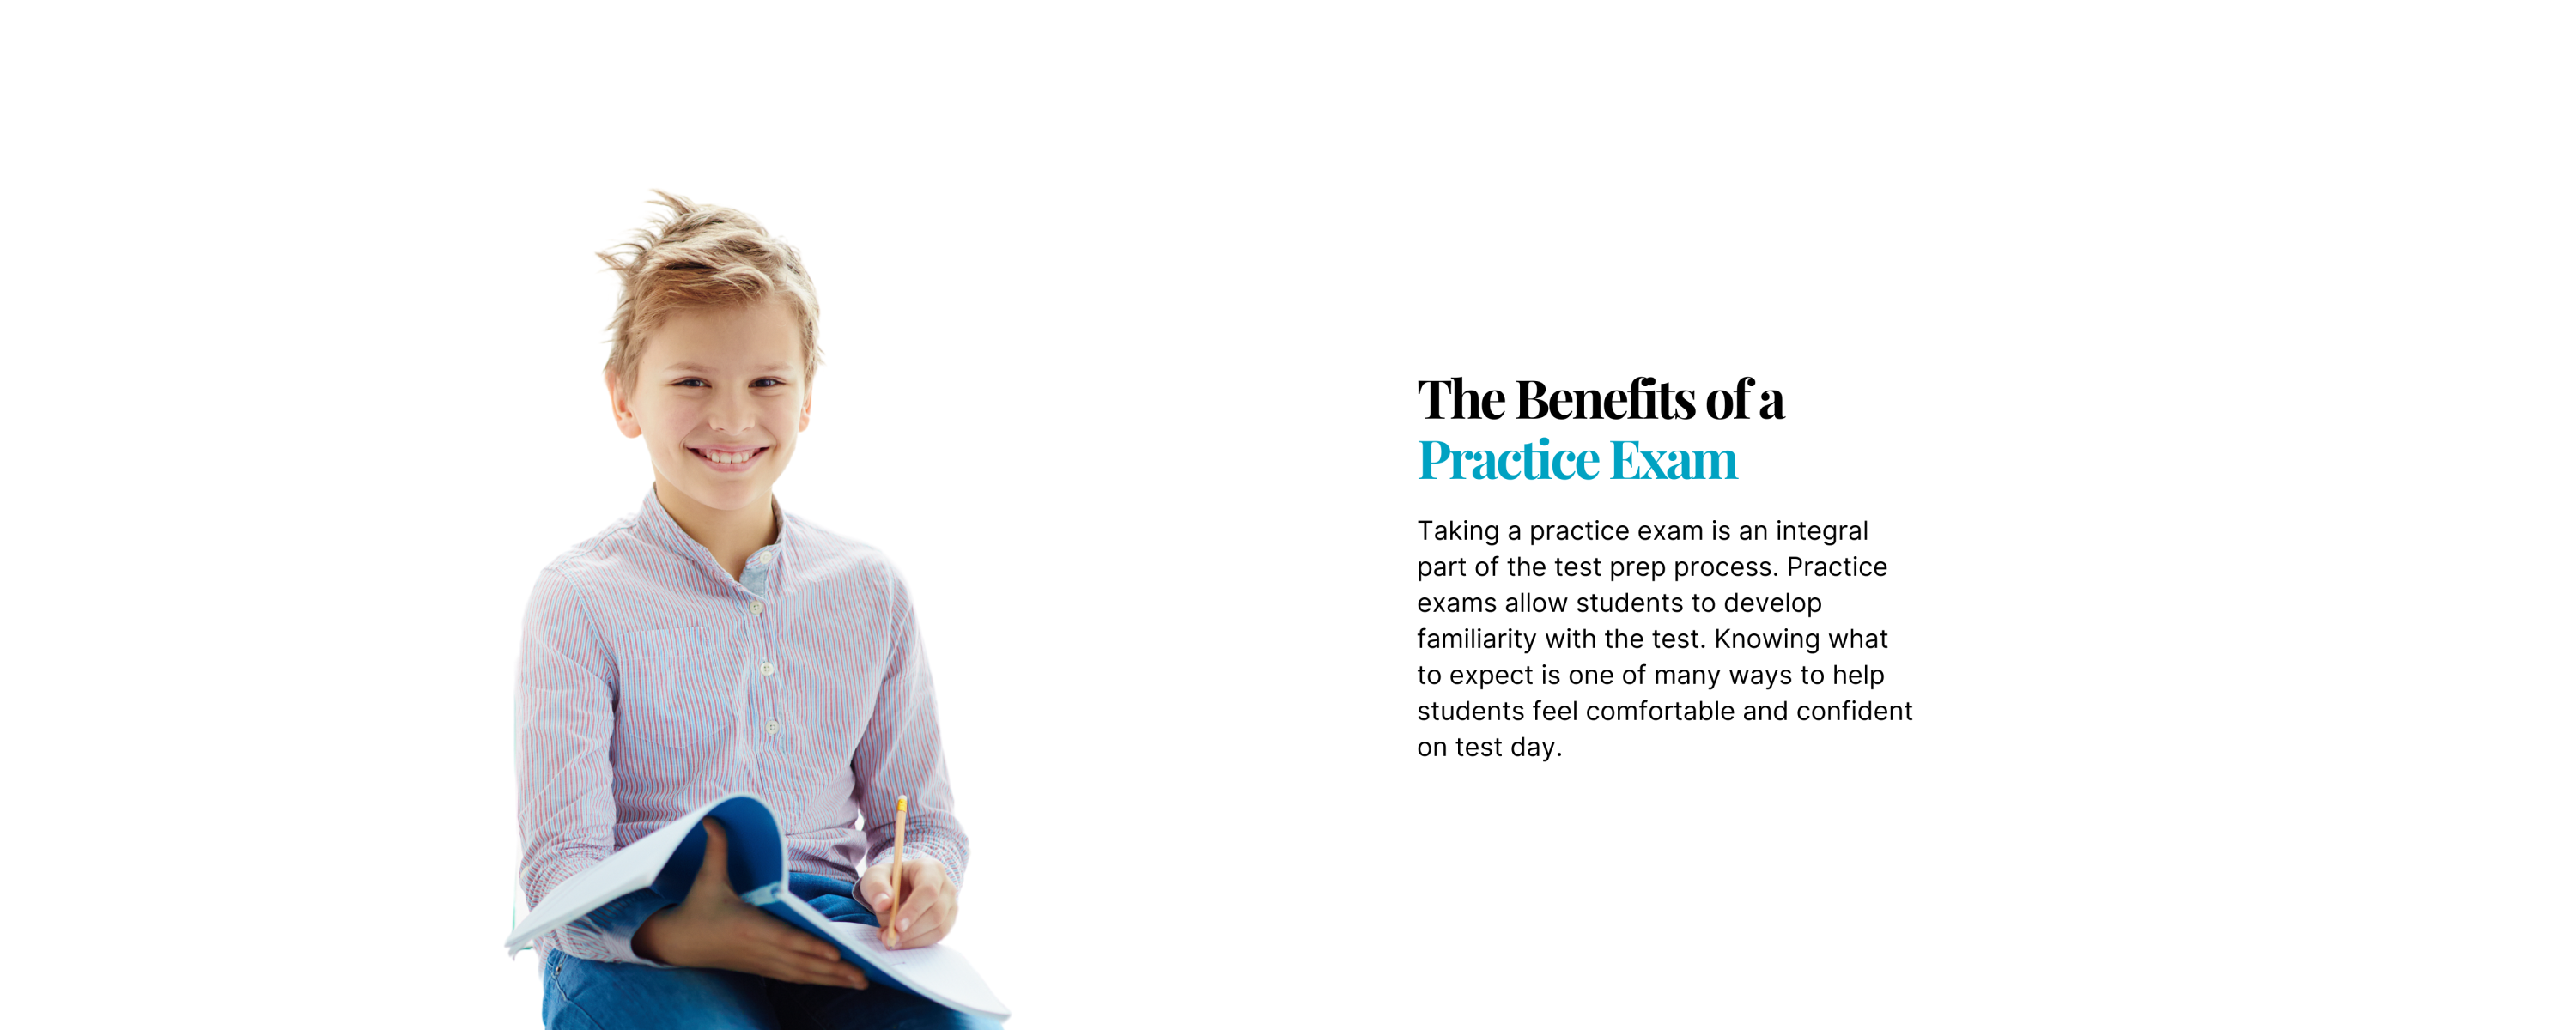 Benefits of a Practice Exam